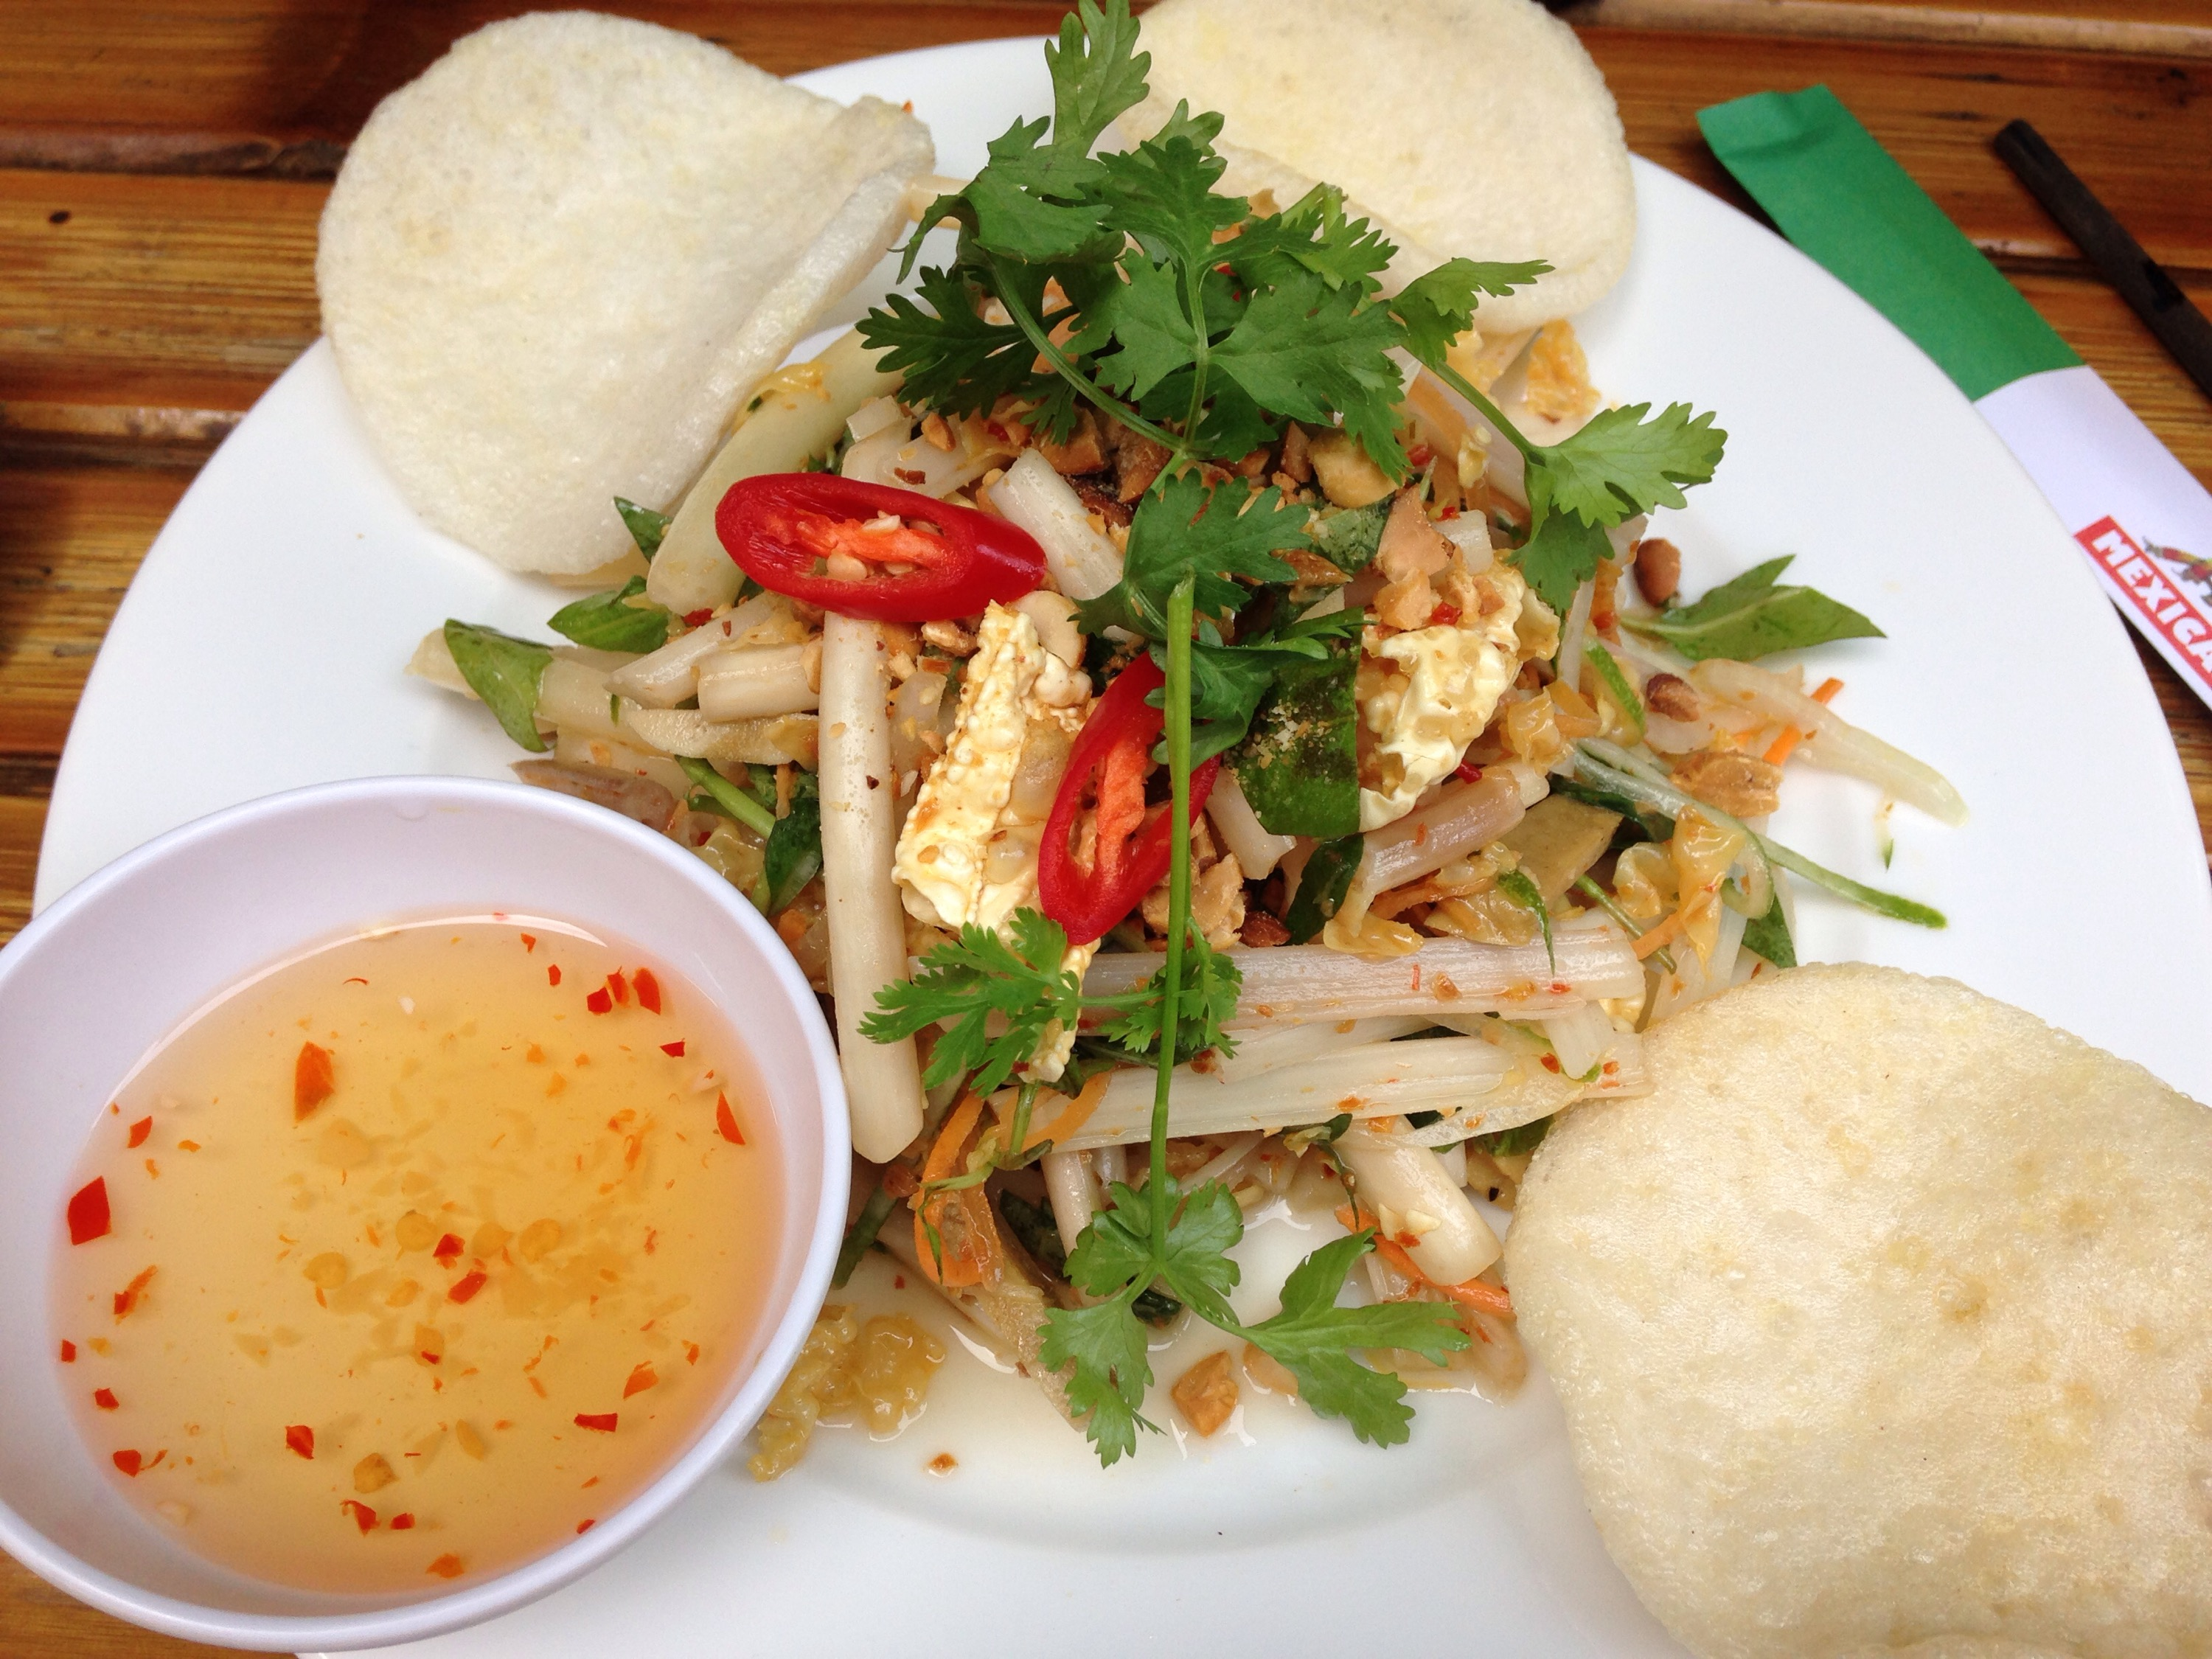 Ho Chi Minh City: the Mekong Delta, vegan eating and running